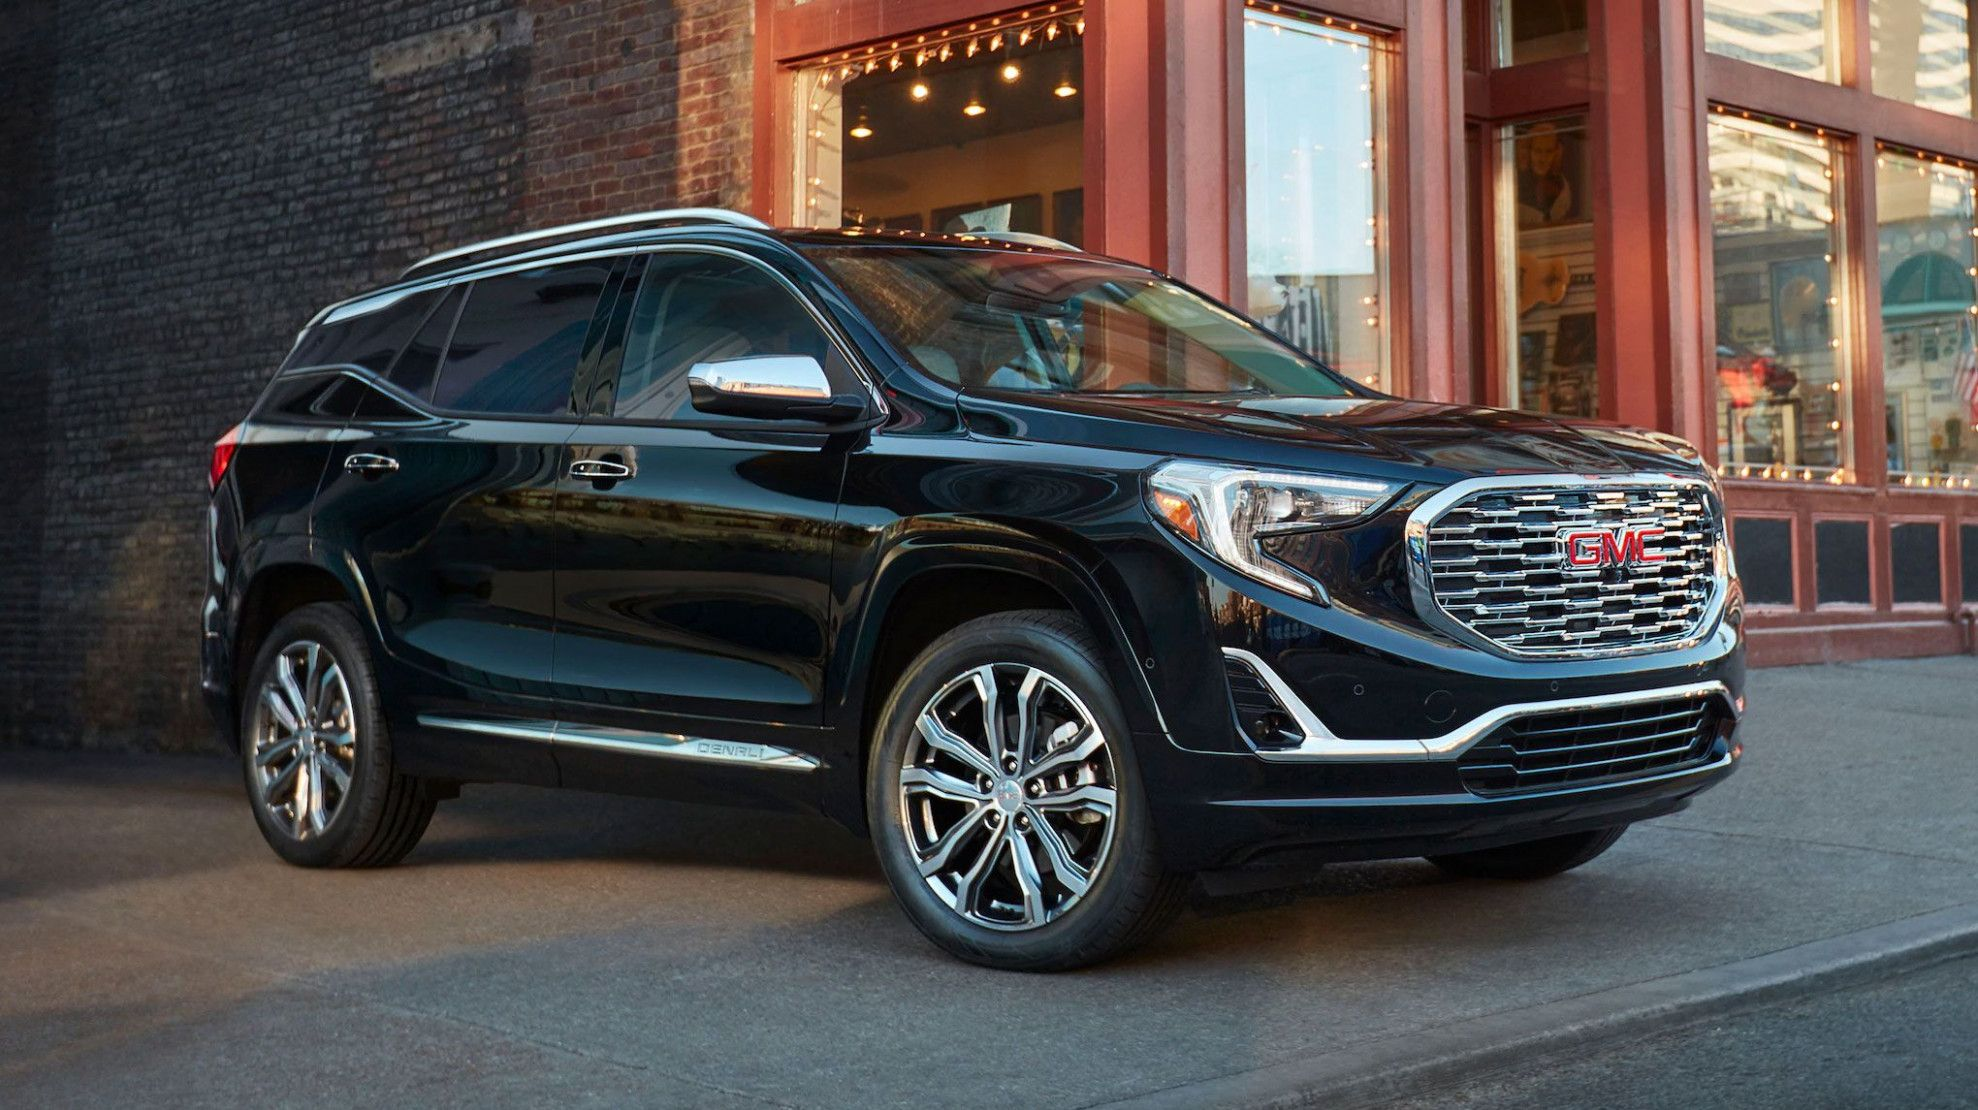 8 Wallpaper 2020 Gmc Terrain Slt In 2020 Gmc Terrain Gmc Suv Gmc Terrain Interior